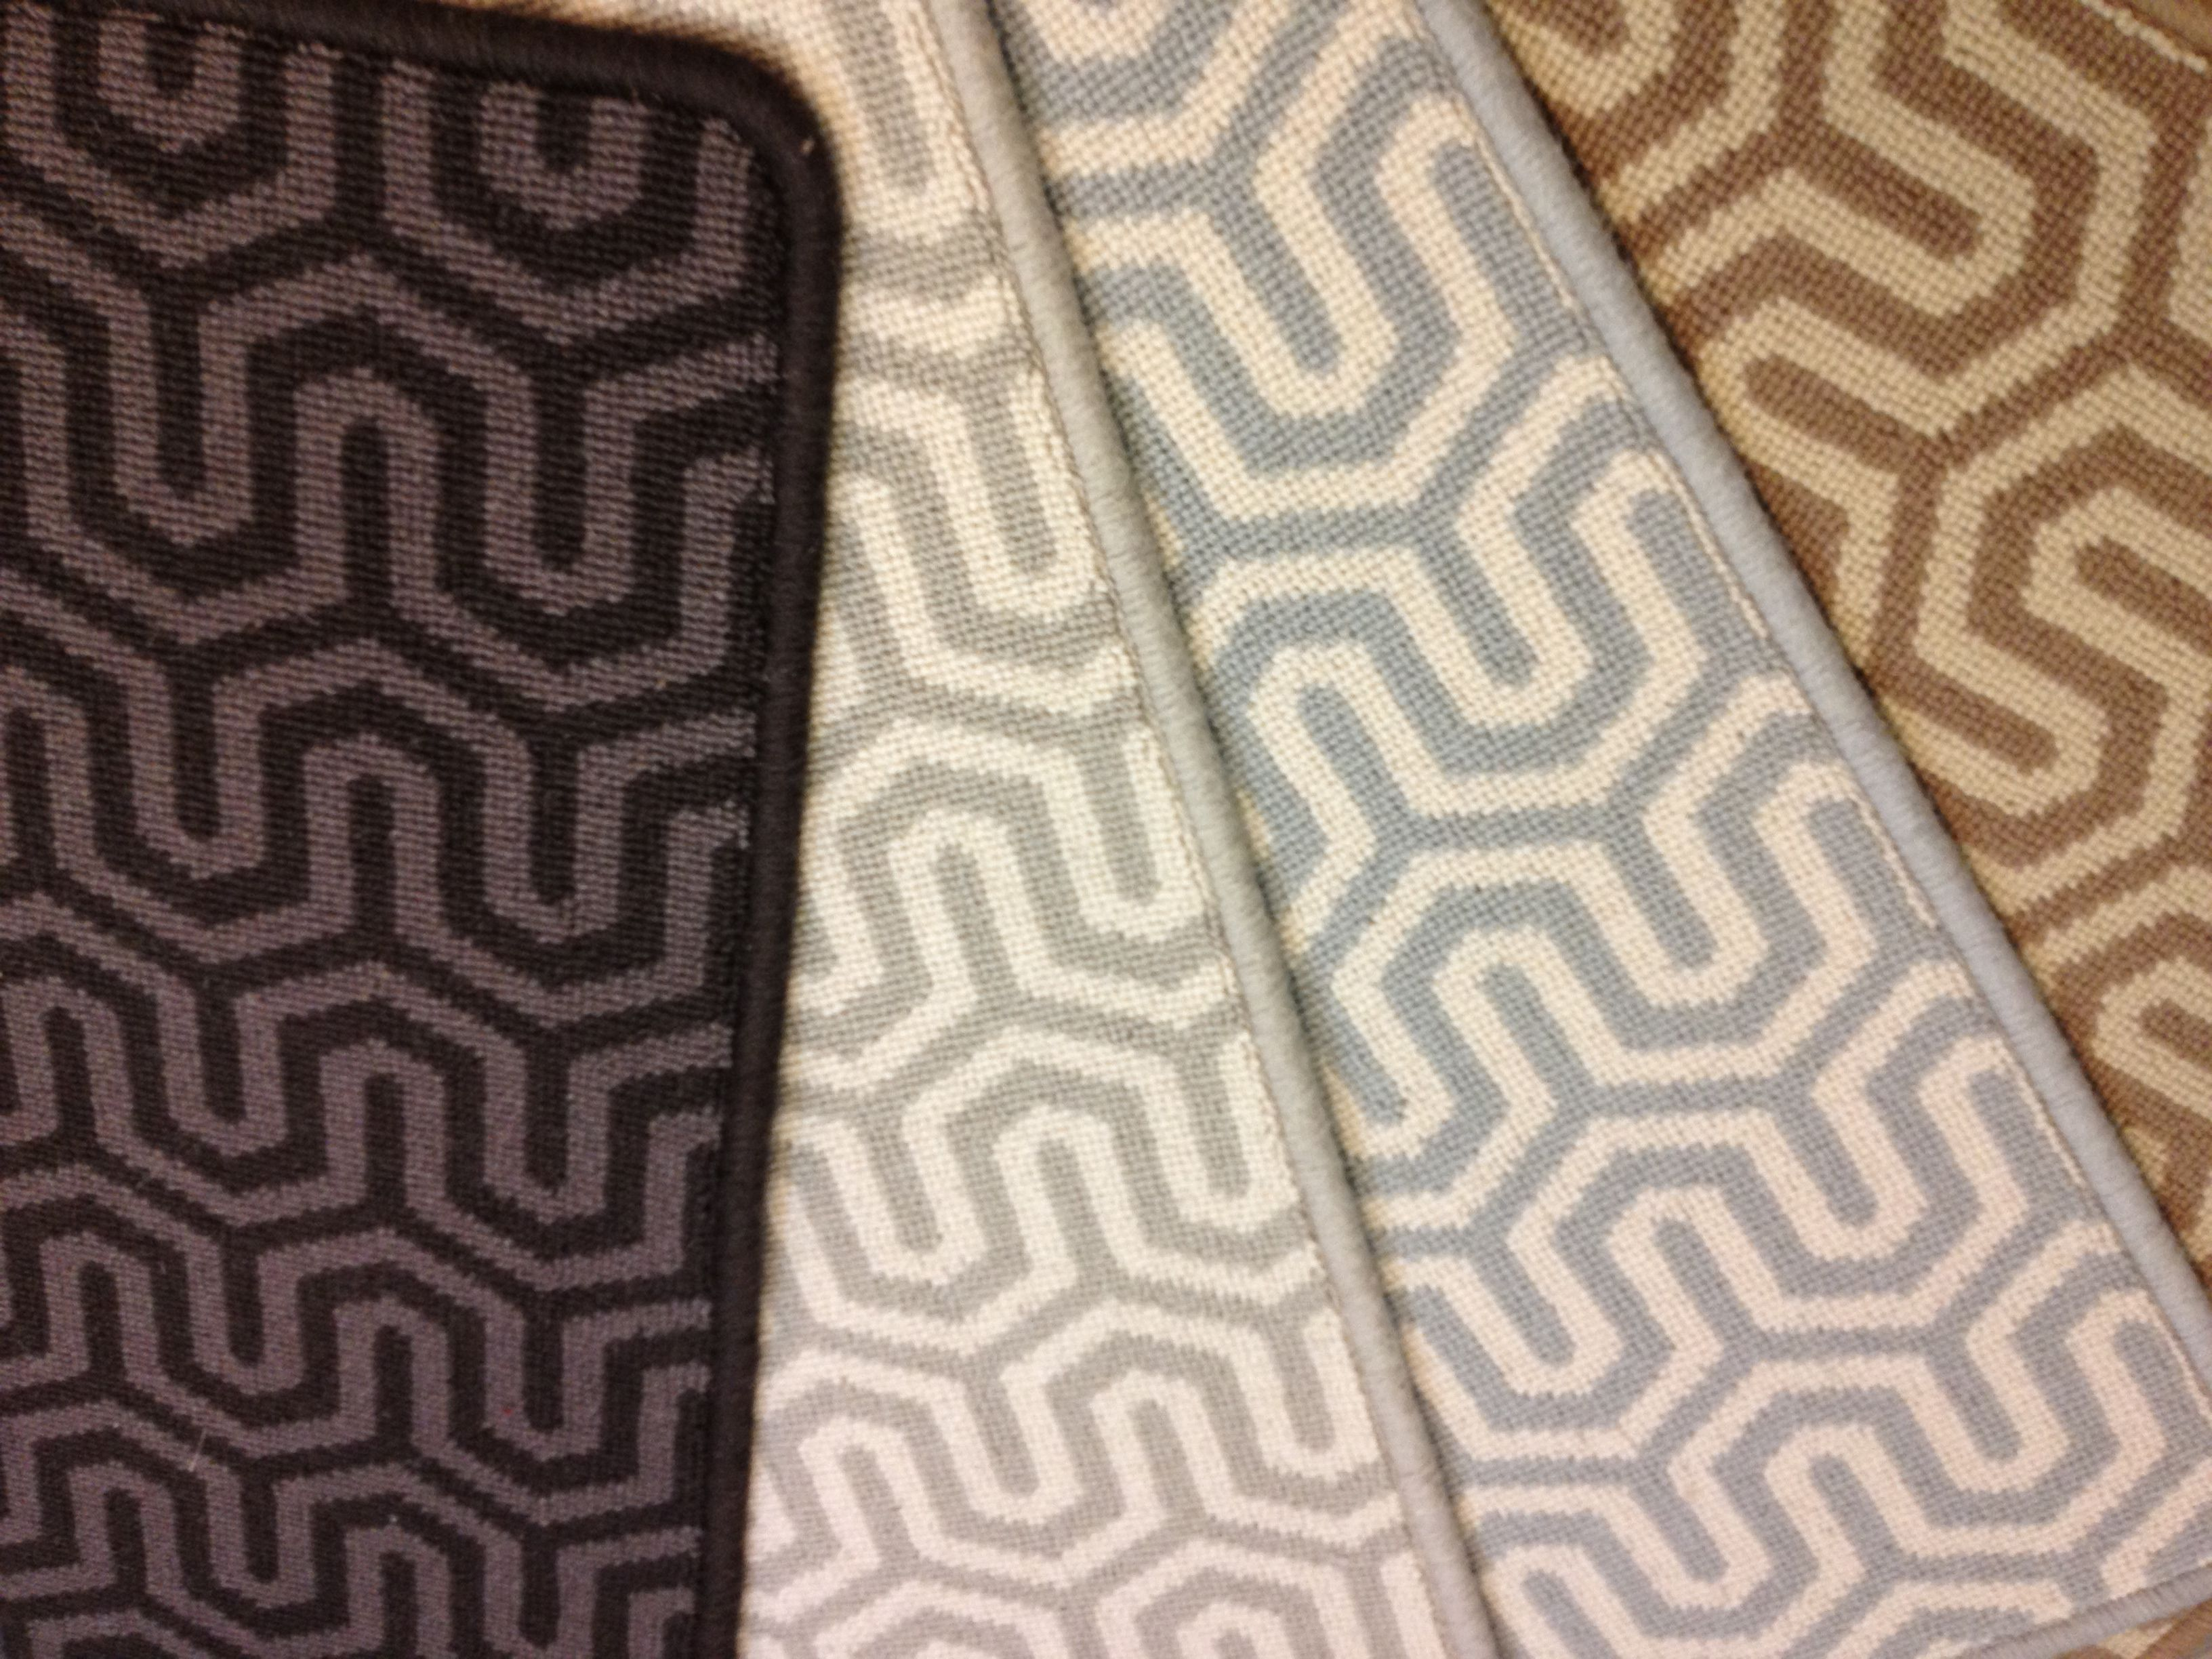 Kingston is a geometric patterned carpet that can be used for Patterned wall to wall carpeting